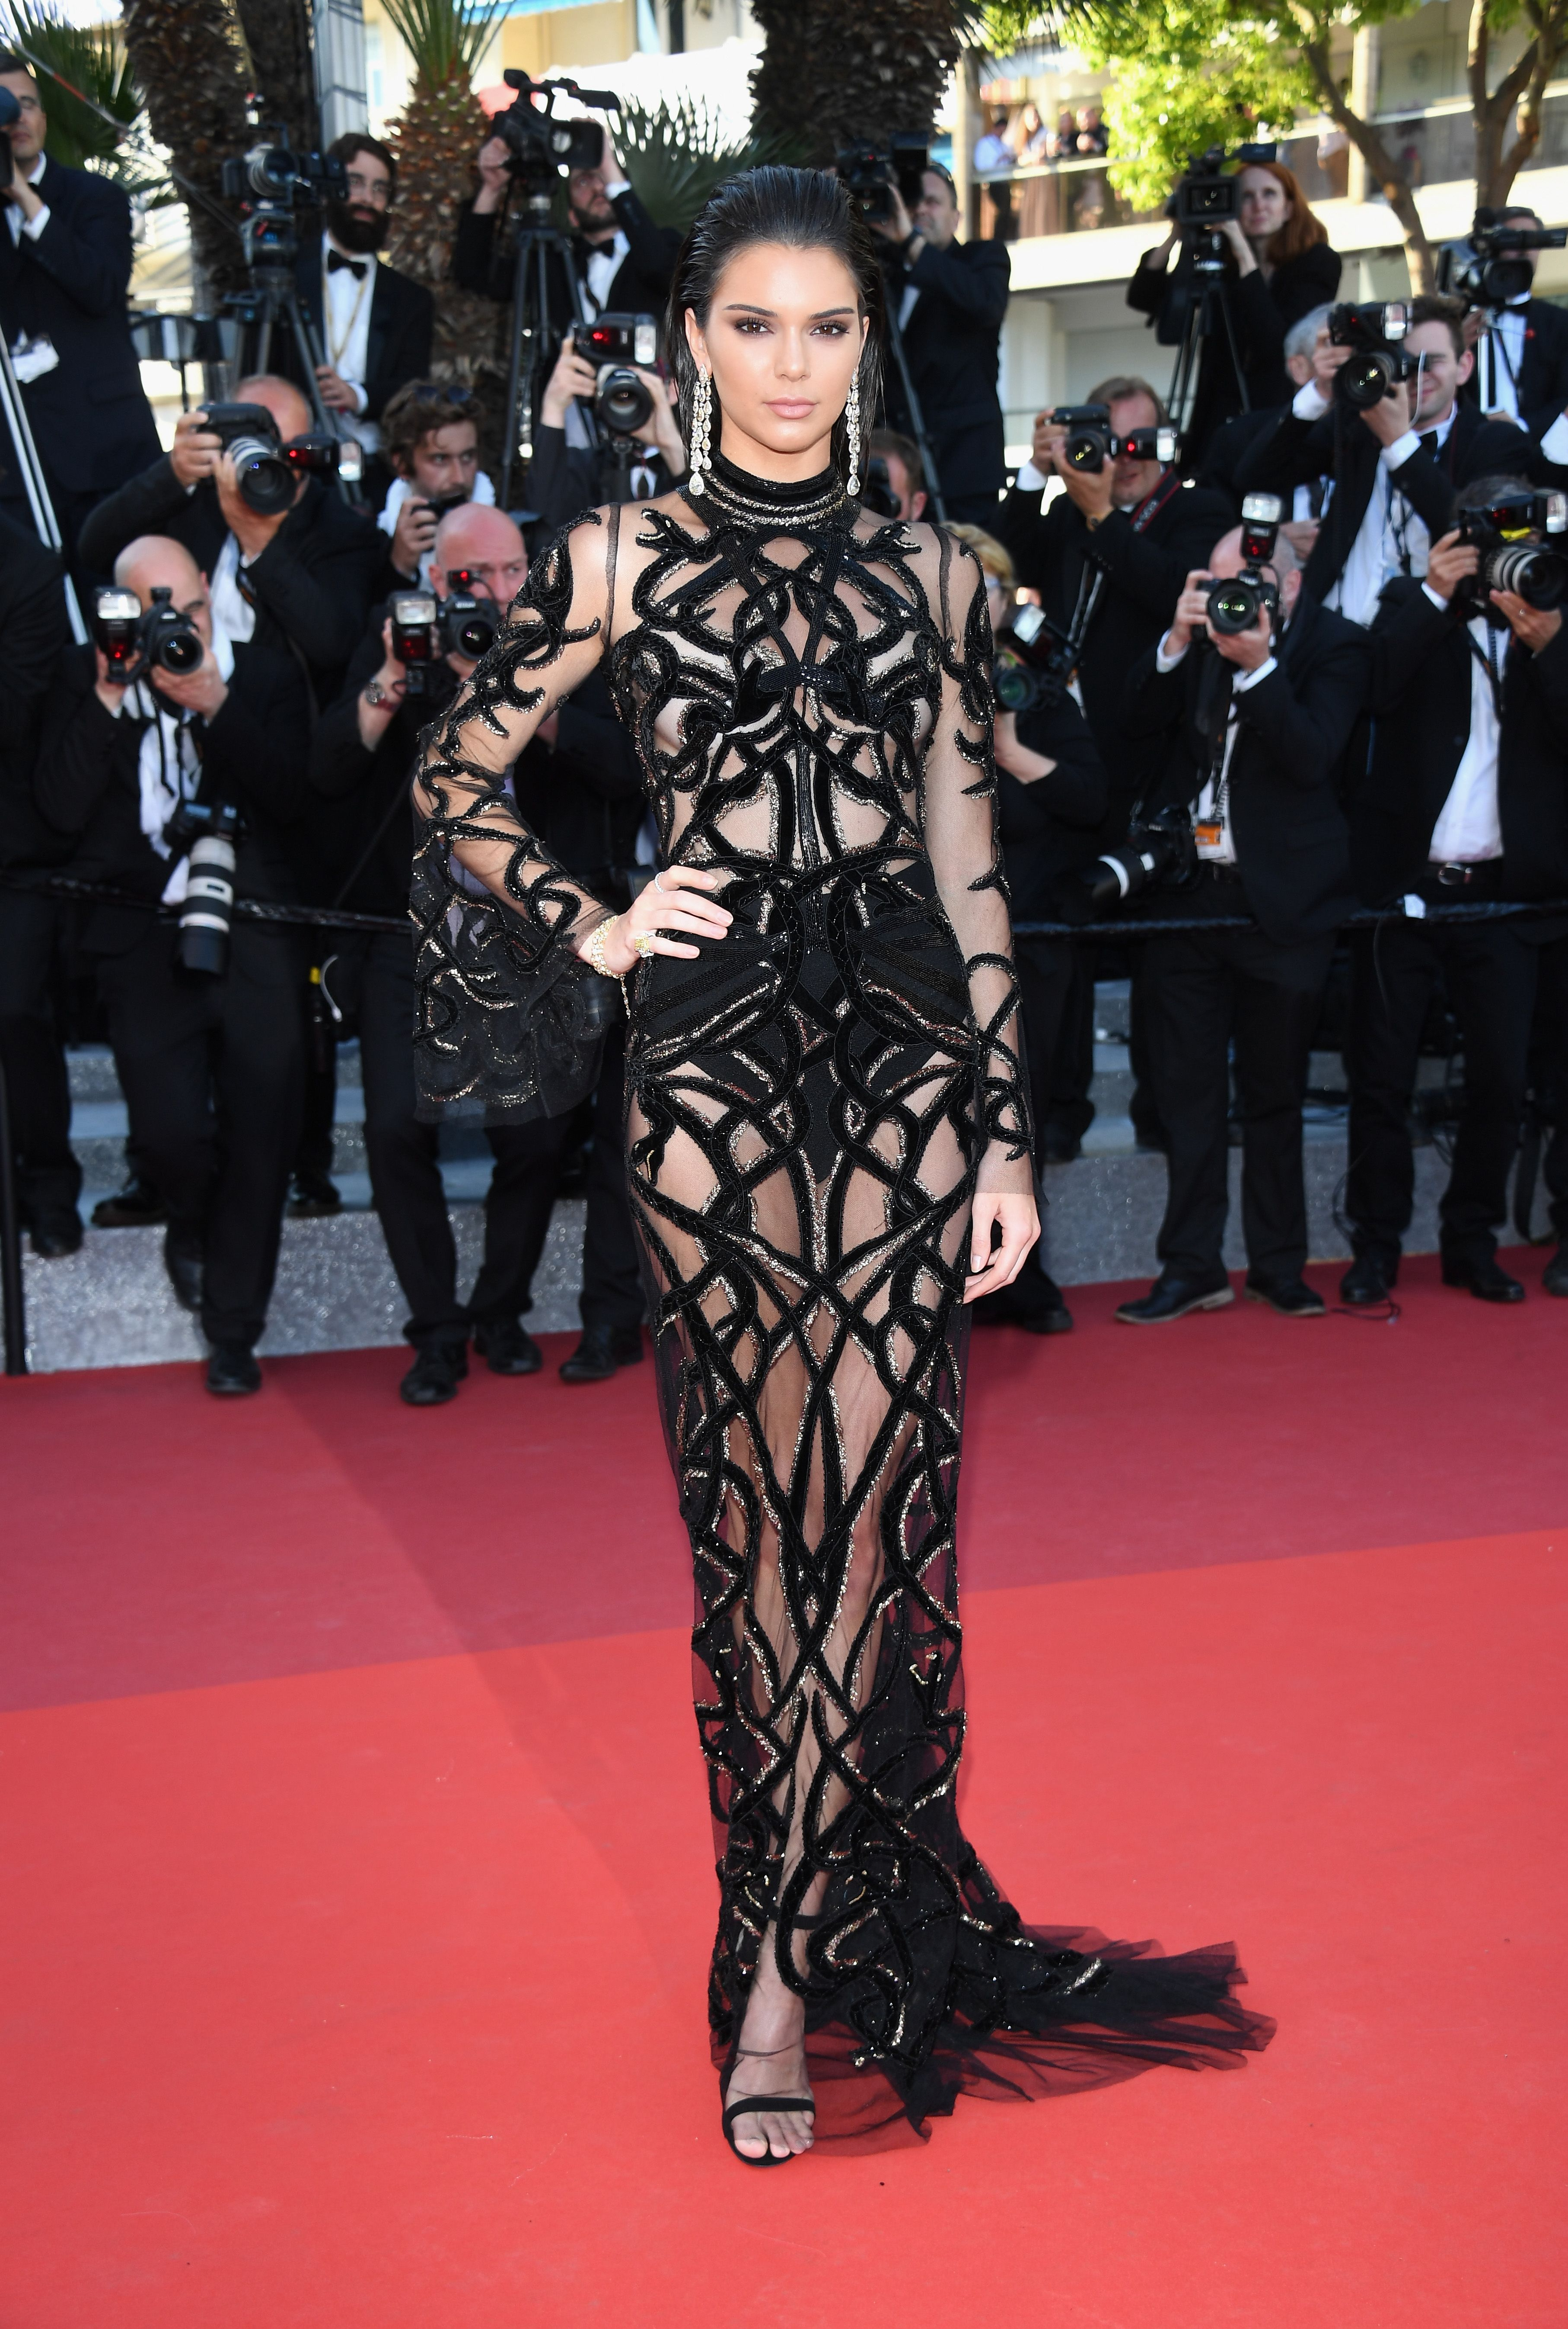 The Best Red Carpet Looks From Cannes